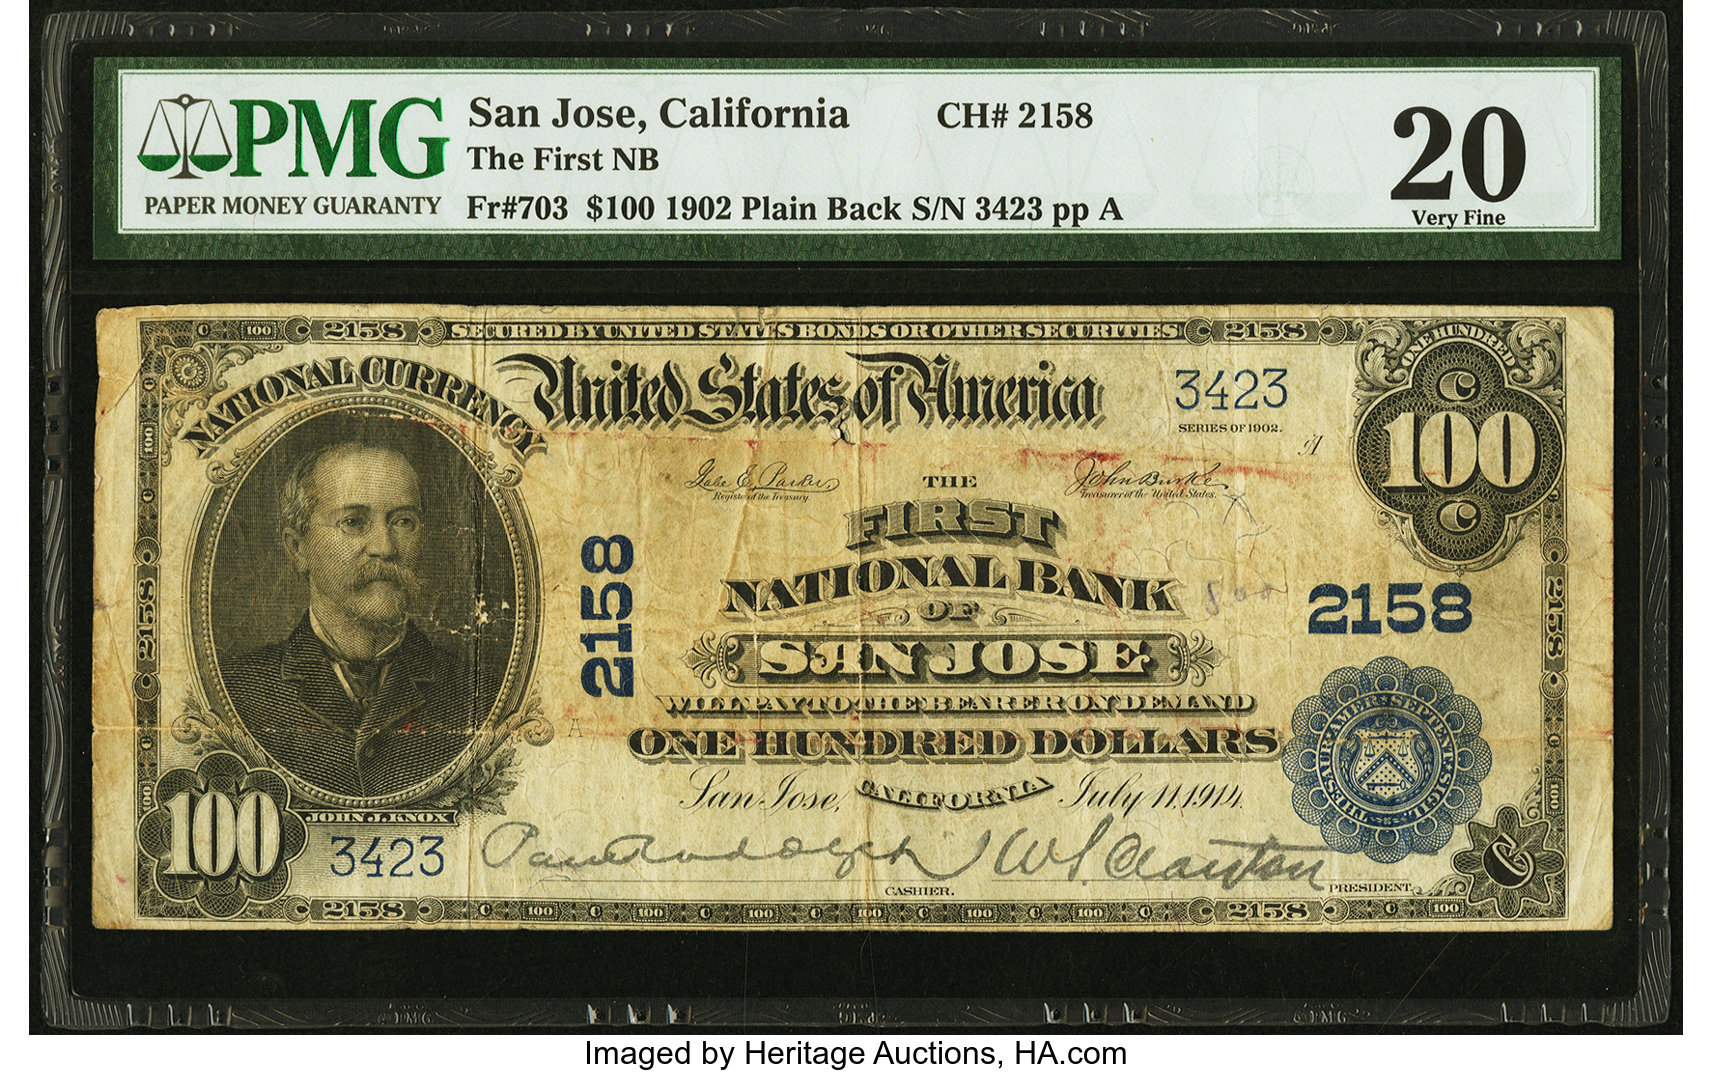 sample image for 1902 3rd Charter Period $100  Plain Back 3rd Issue (Fr.# 703)